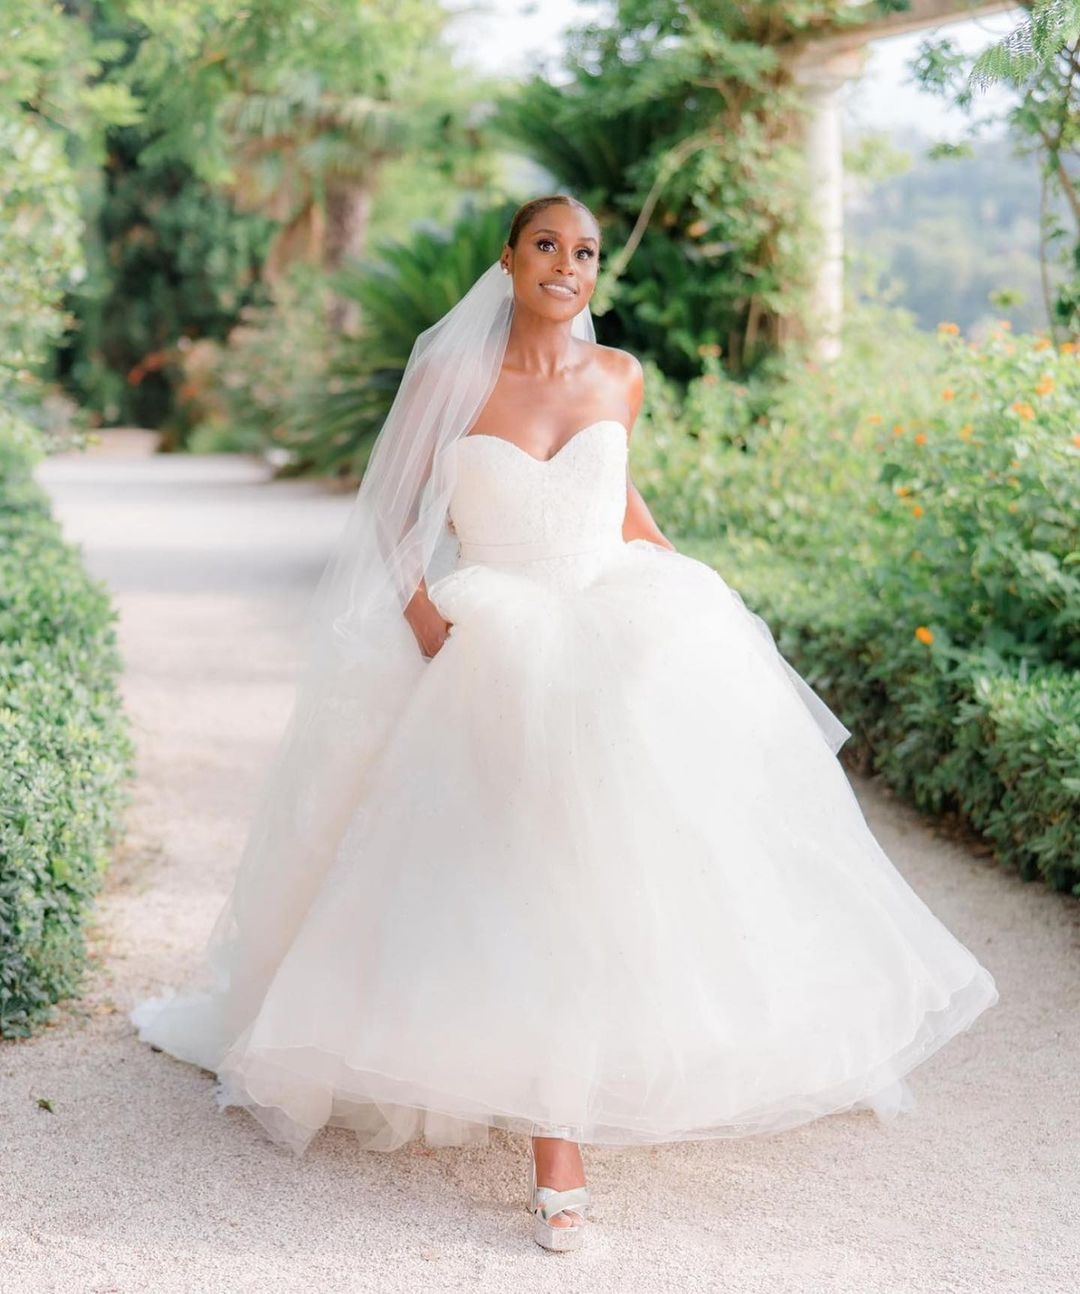 American Actress Issa Rae marries Businessman Louis Diame in intimate ceremony 12